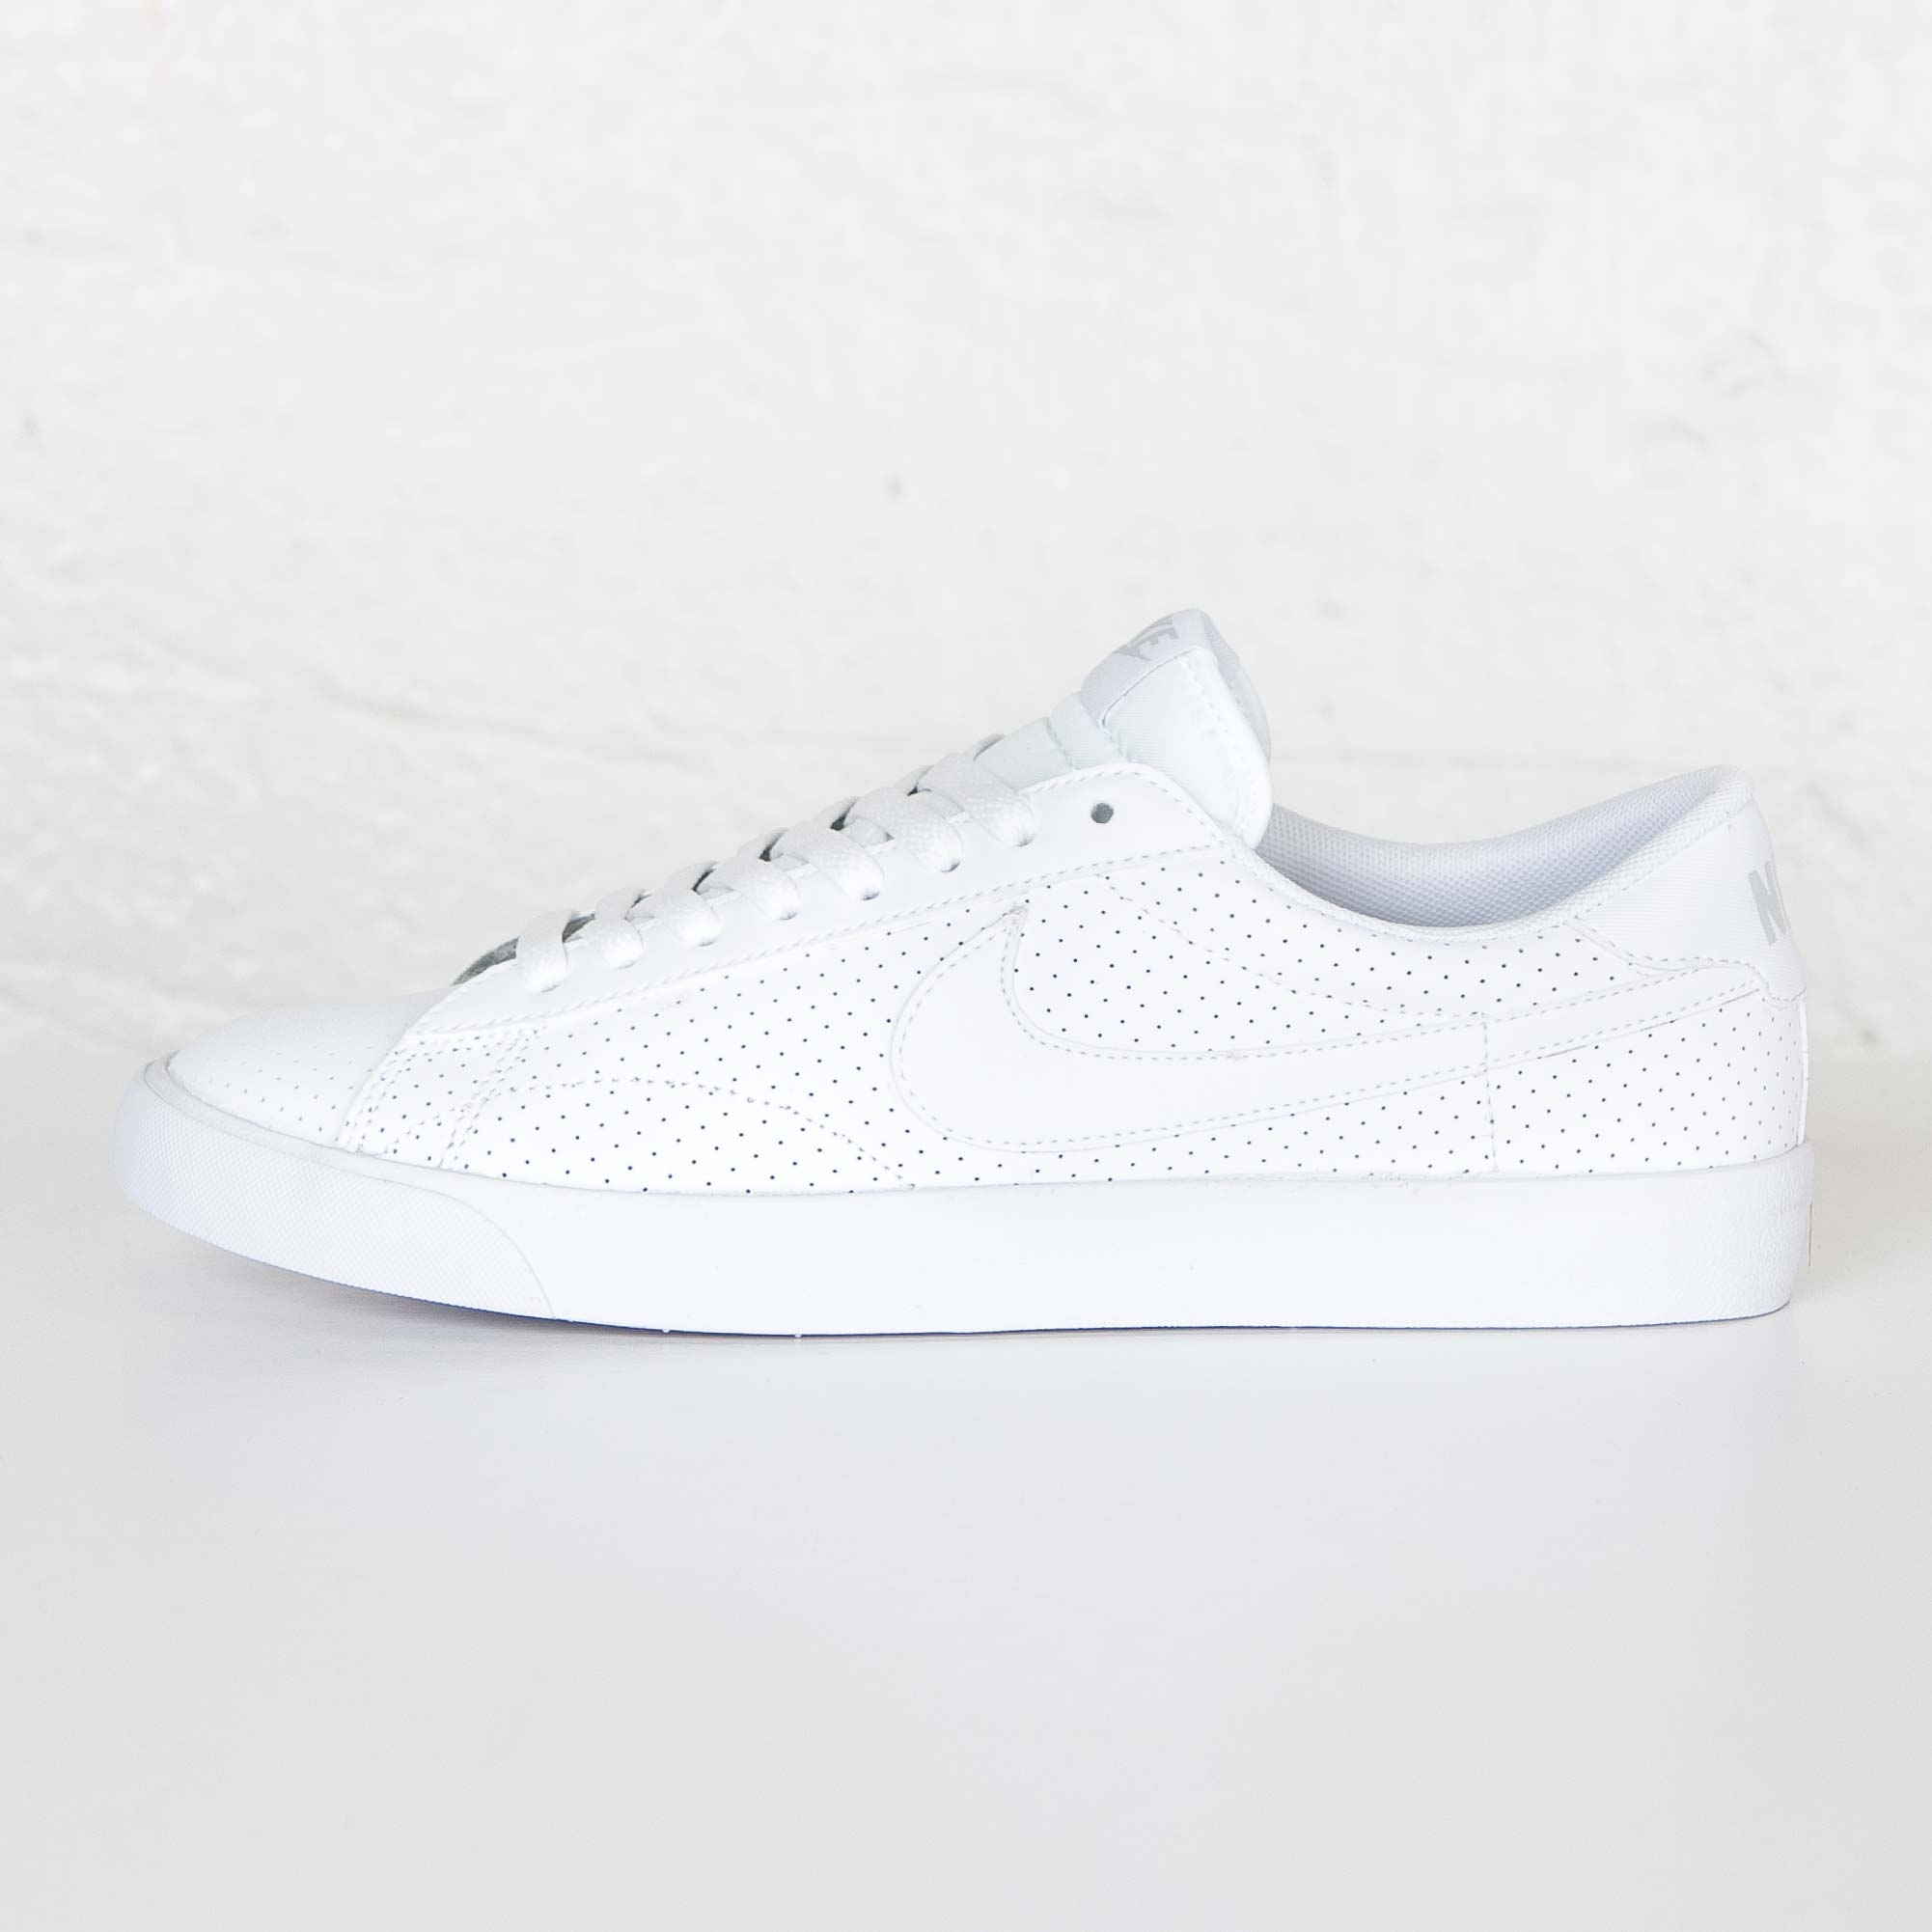 Nike Tennis Classic AC ND - 377812-118 - Sneakersnstuff  593d164323